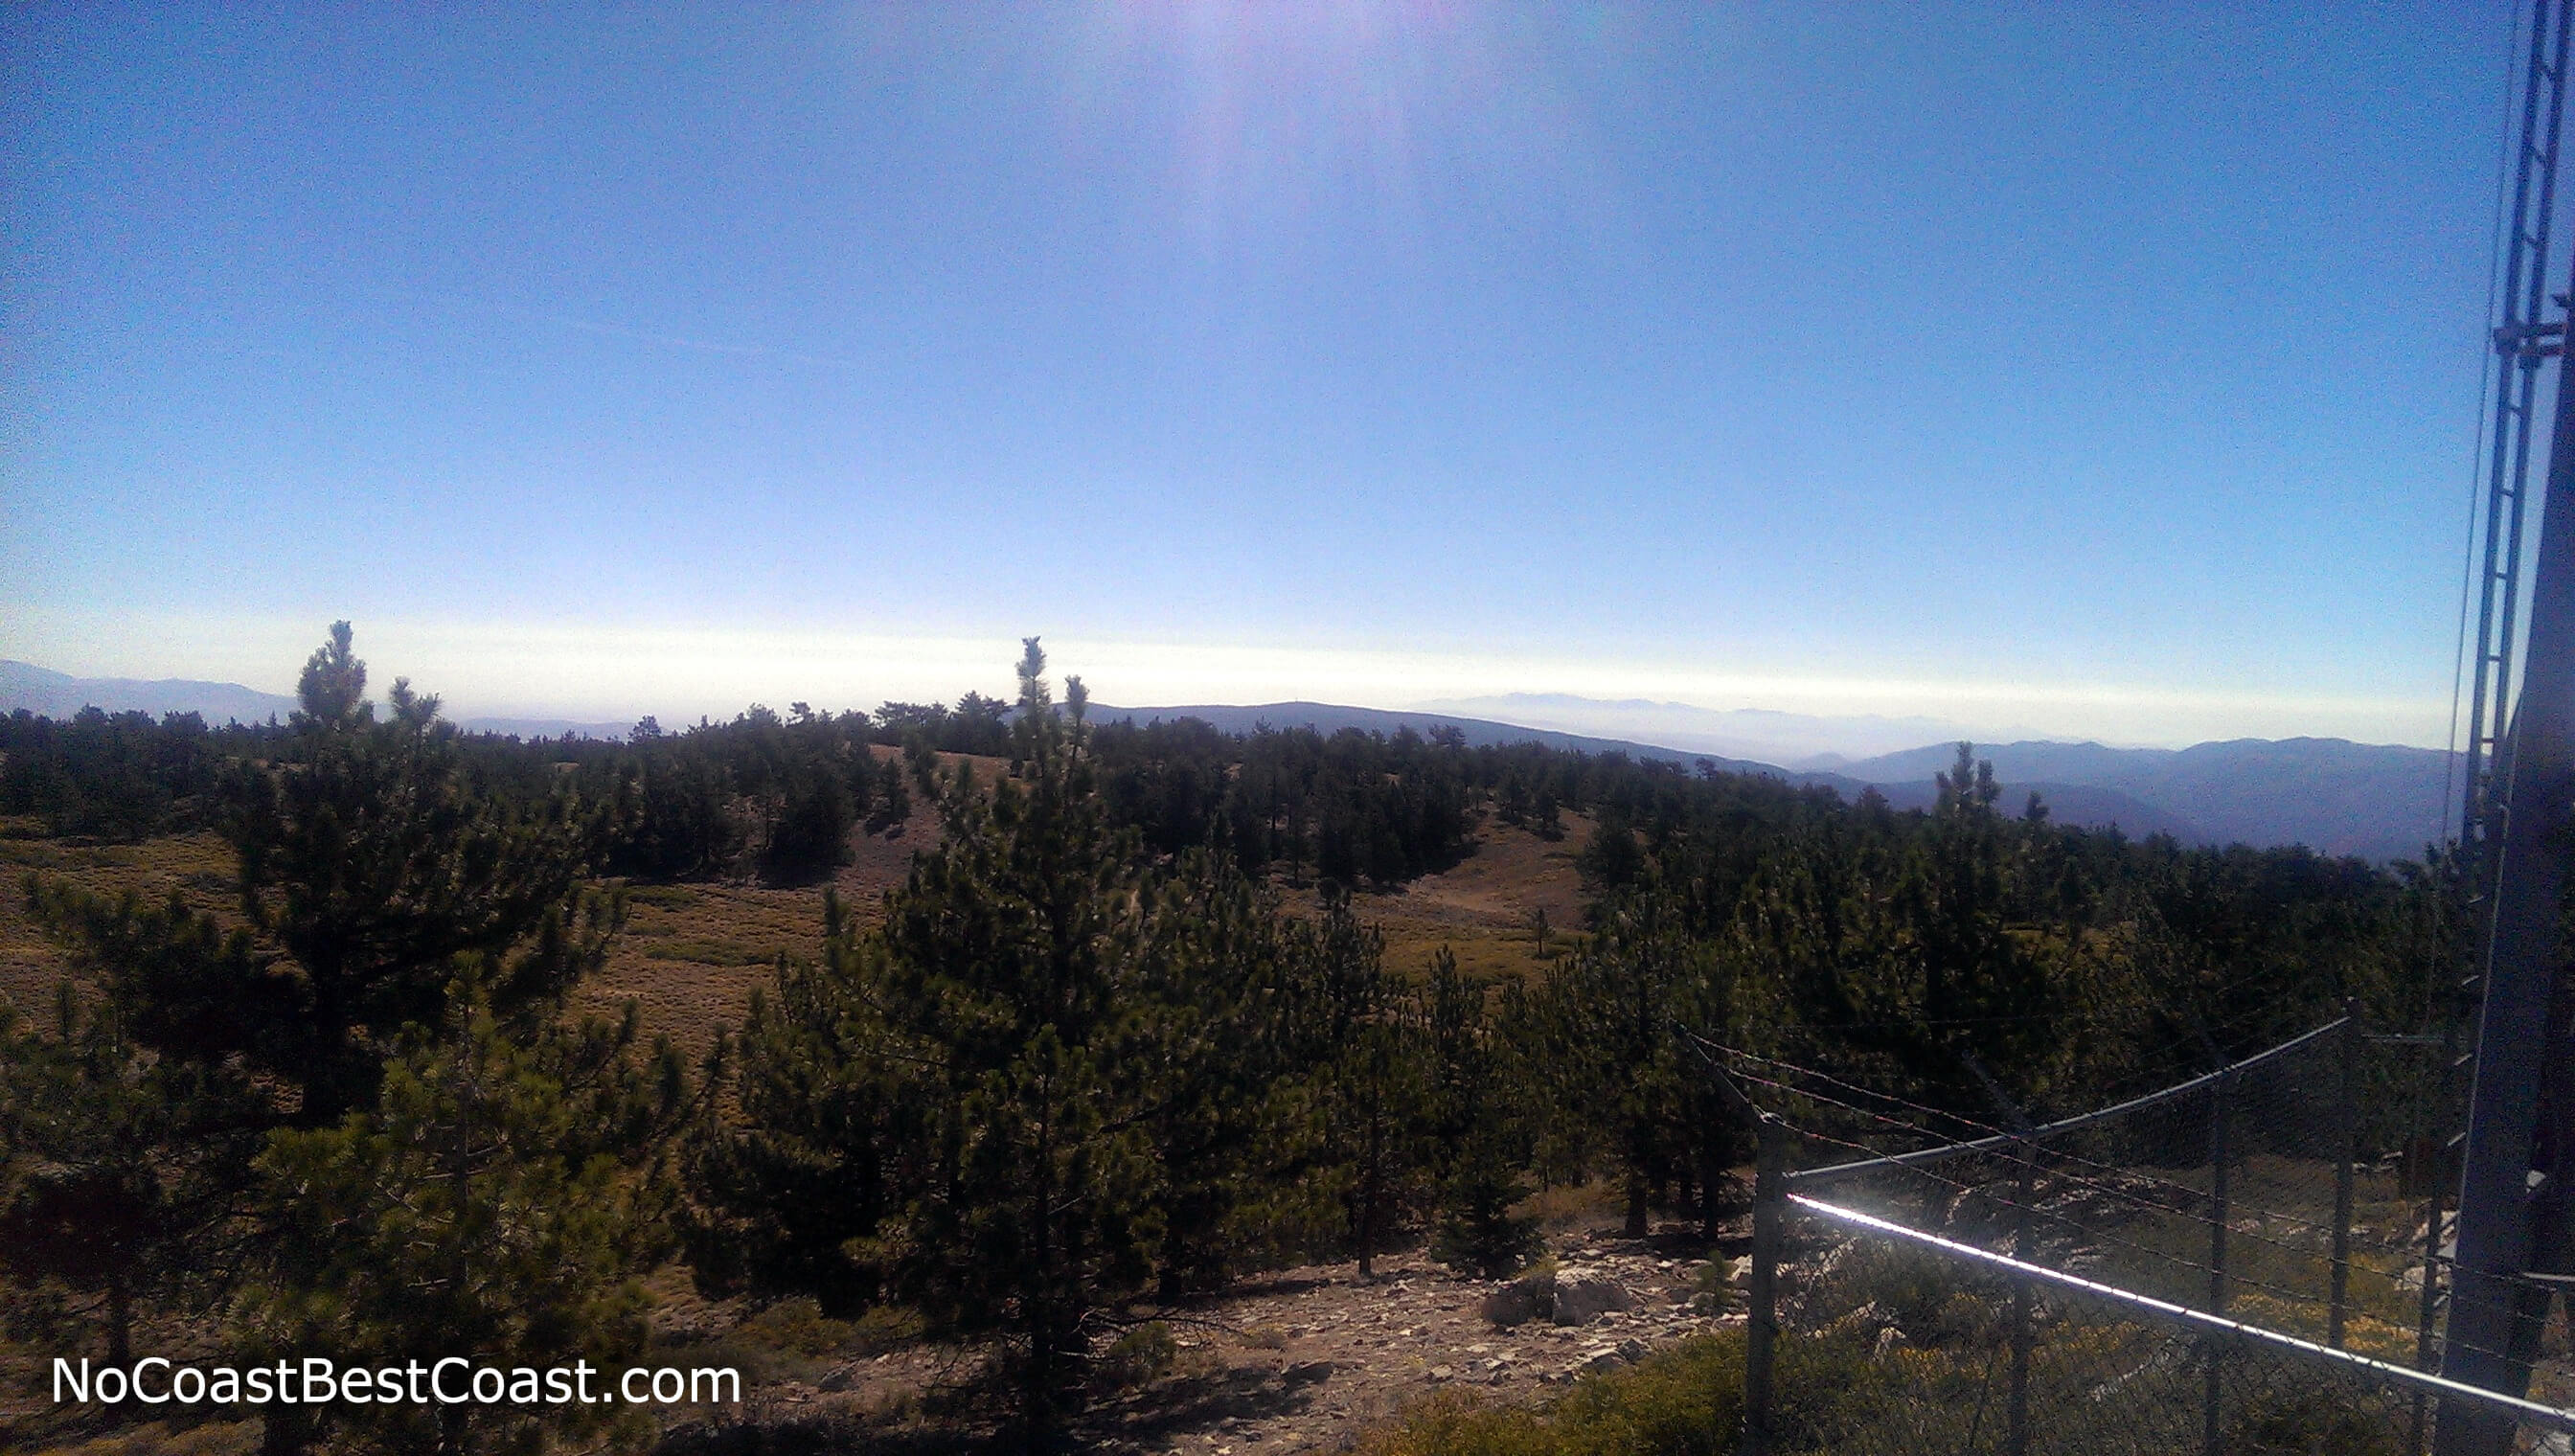 The view south from the electrical equipment atop Mount Pinos